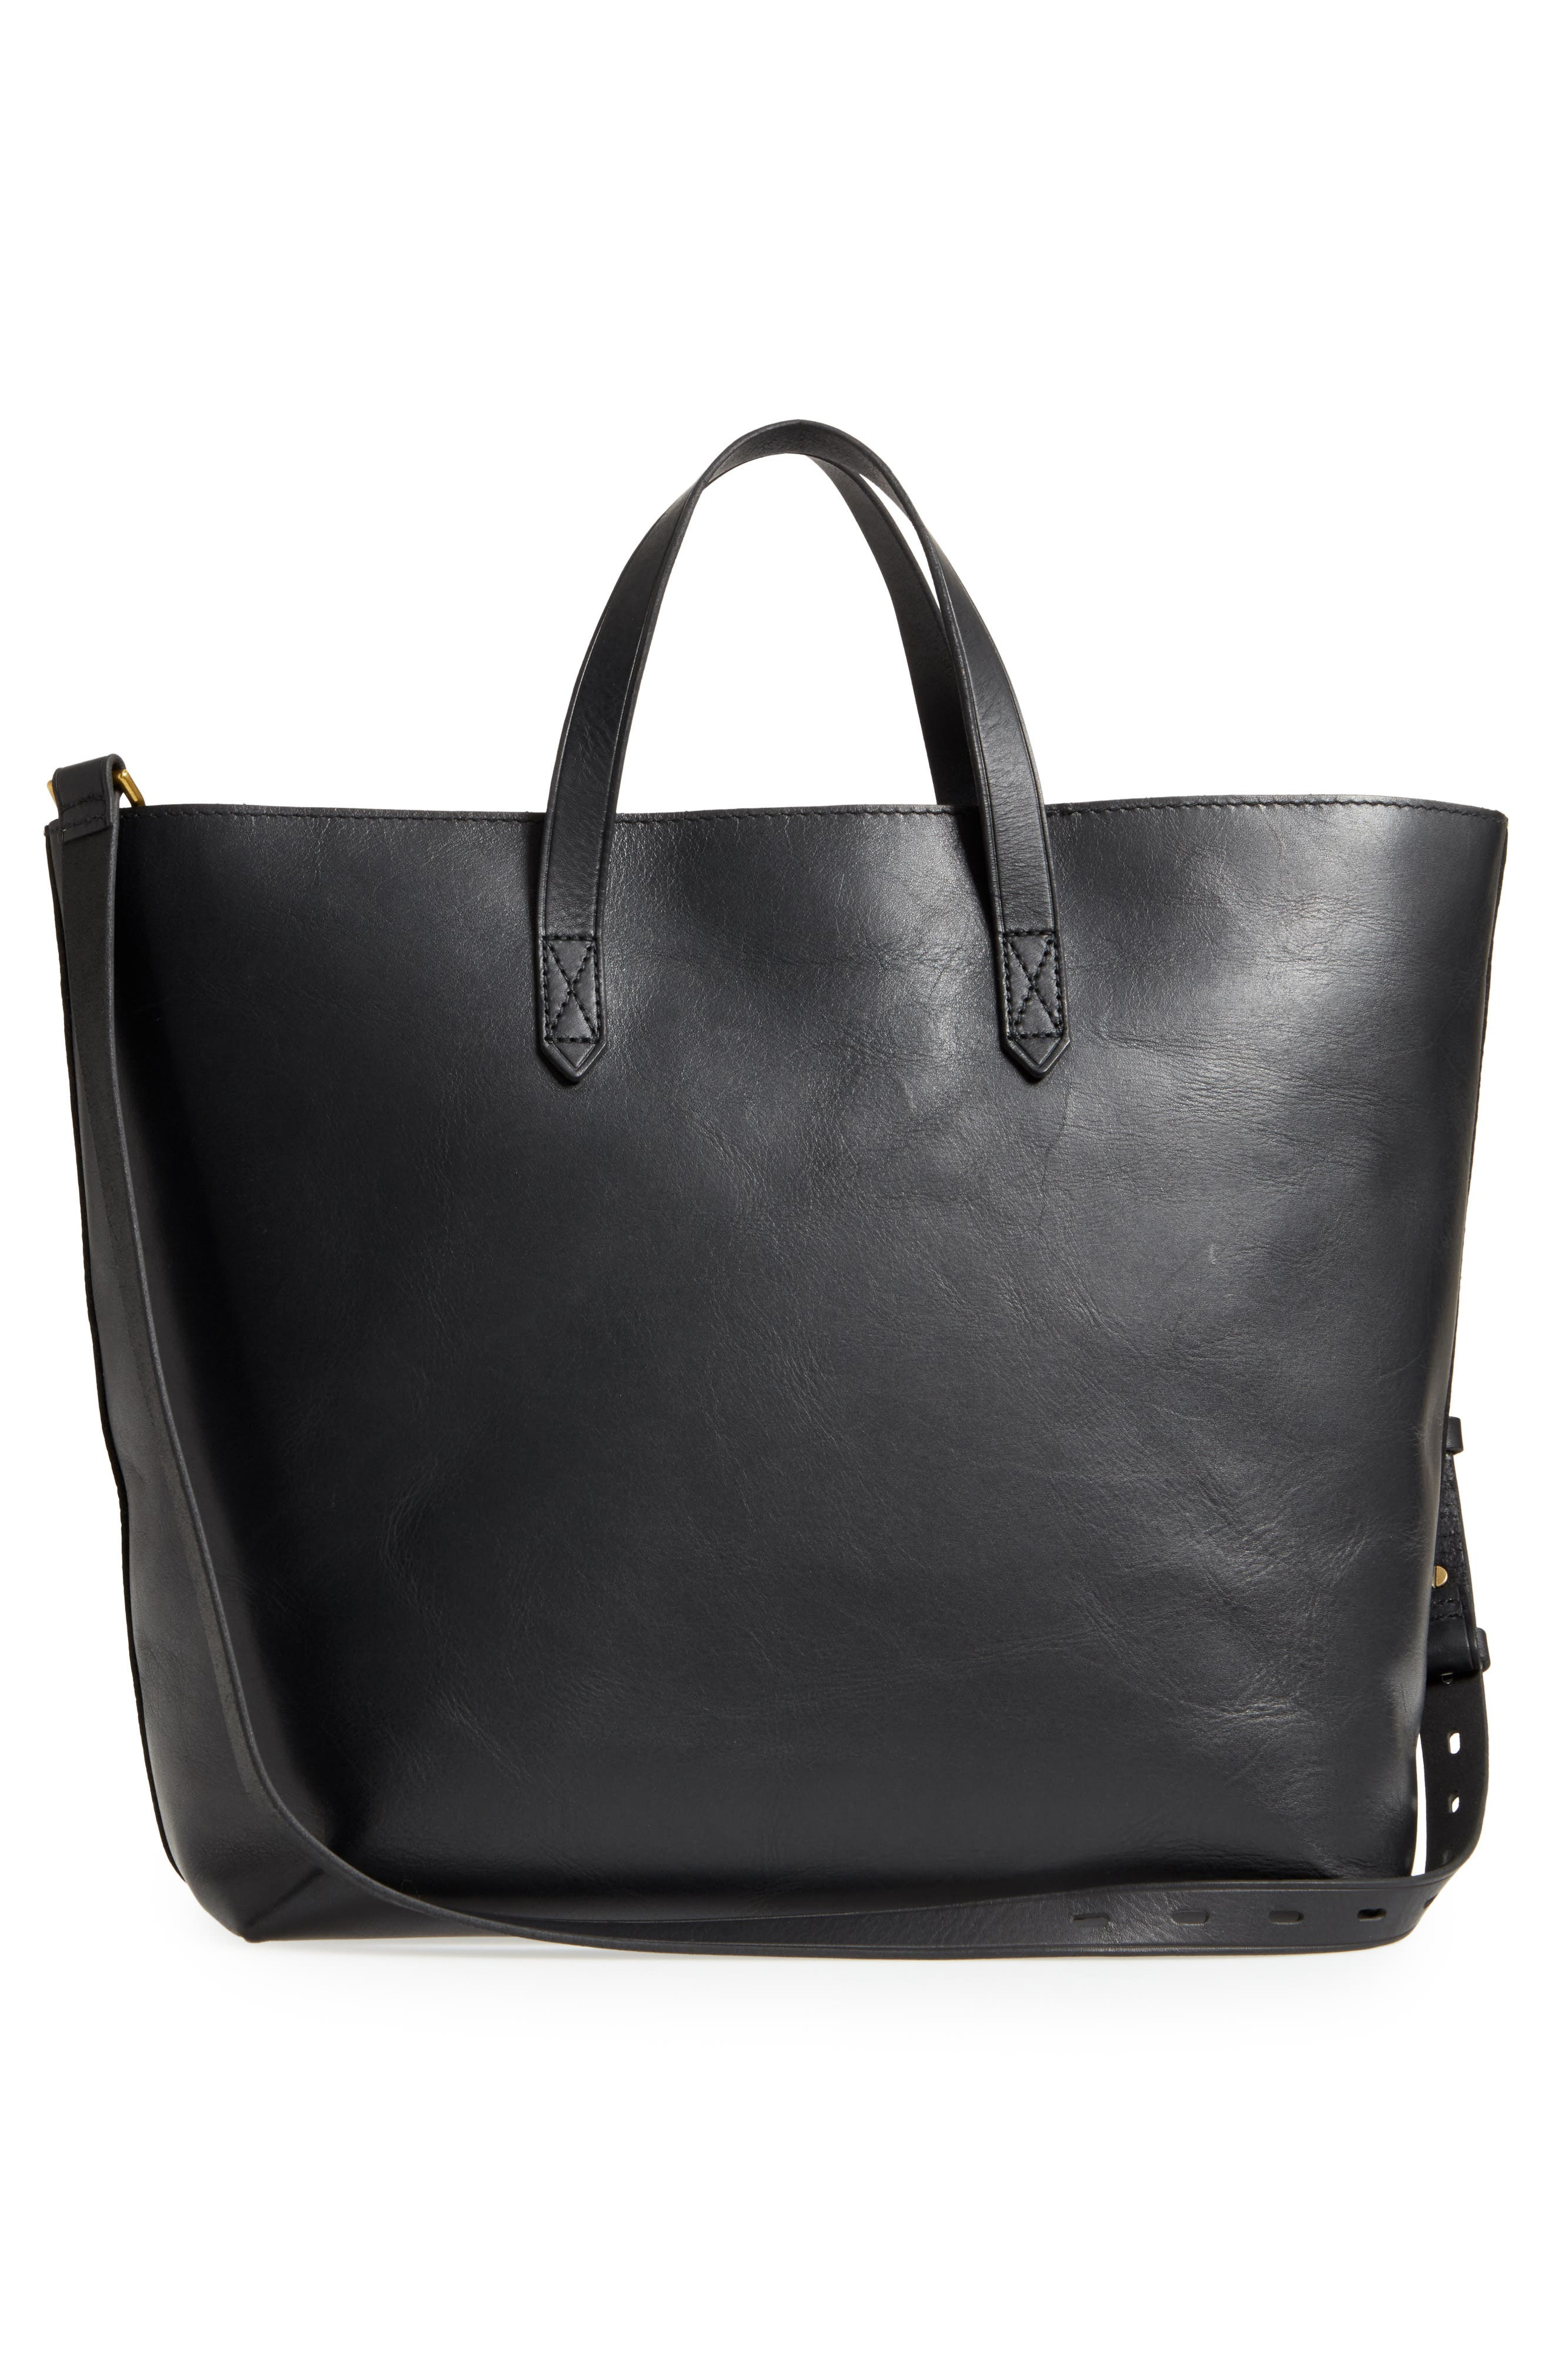 MADEWELL, Zip Top Transport Leather Carryall, Alternate thumbnail 4, color, TRUE BLACK